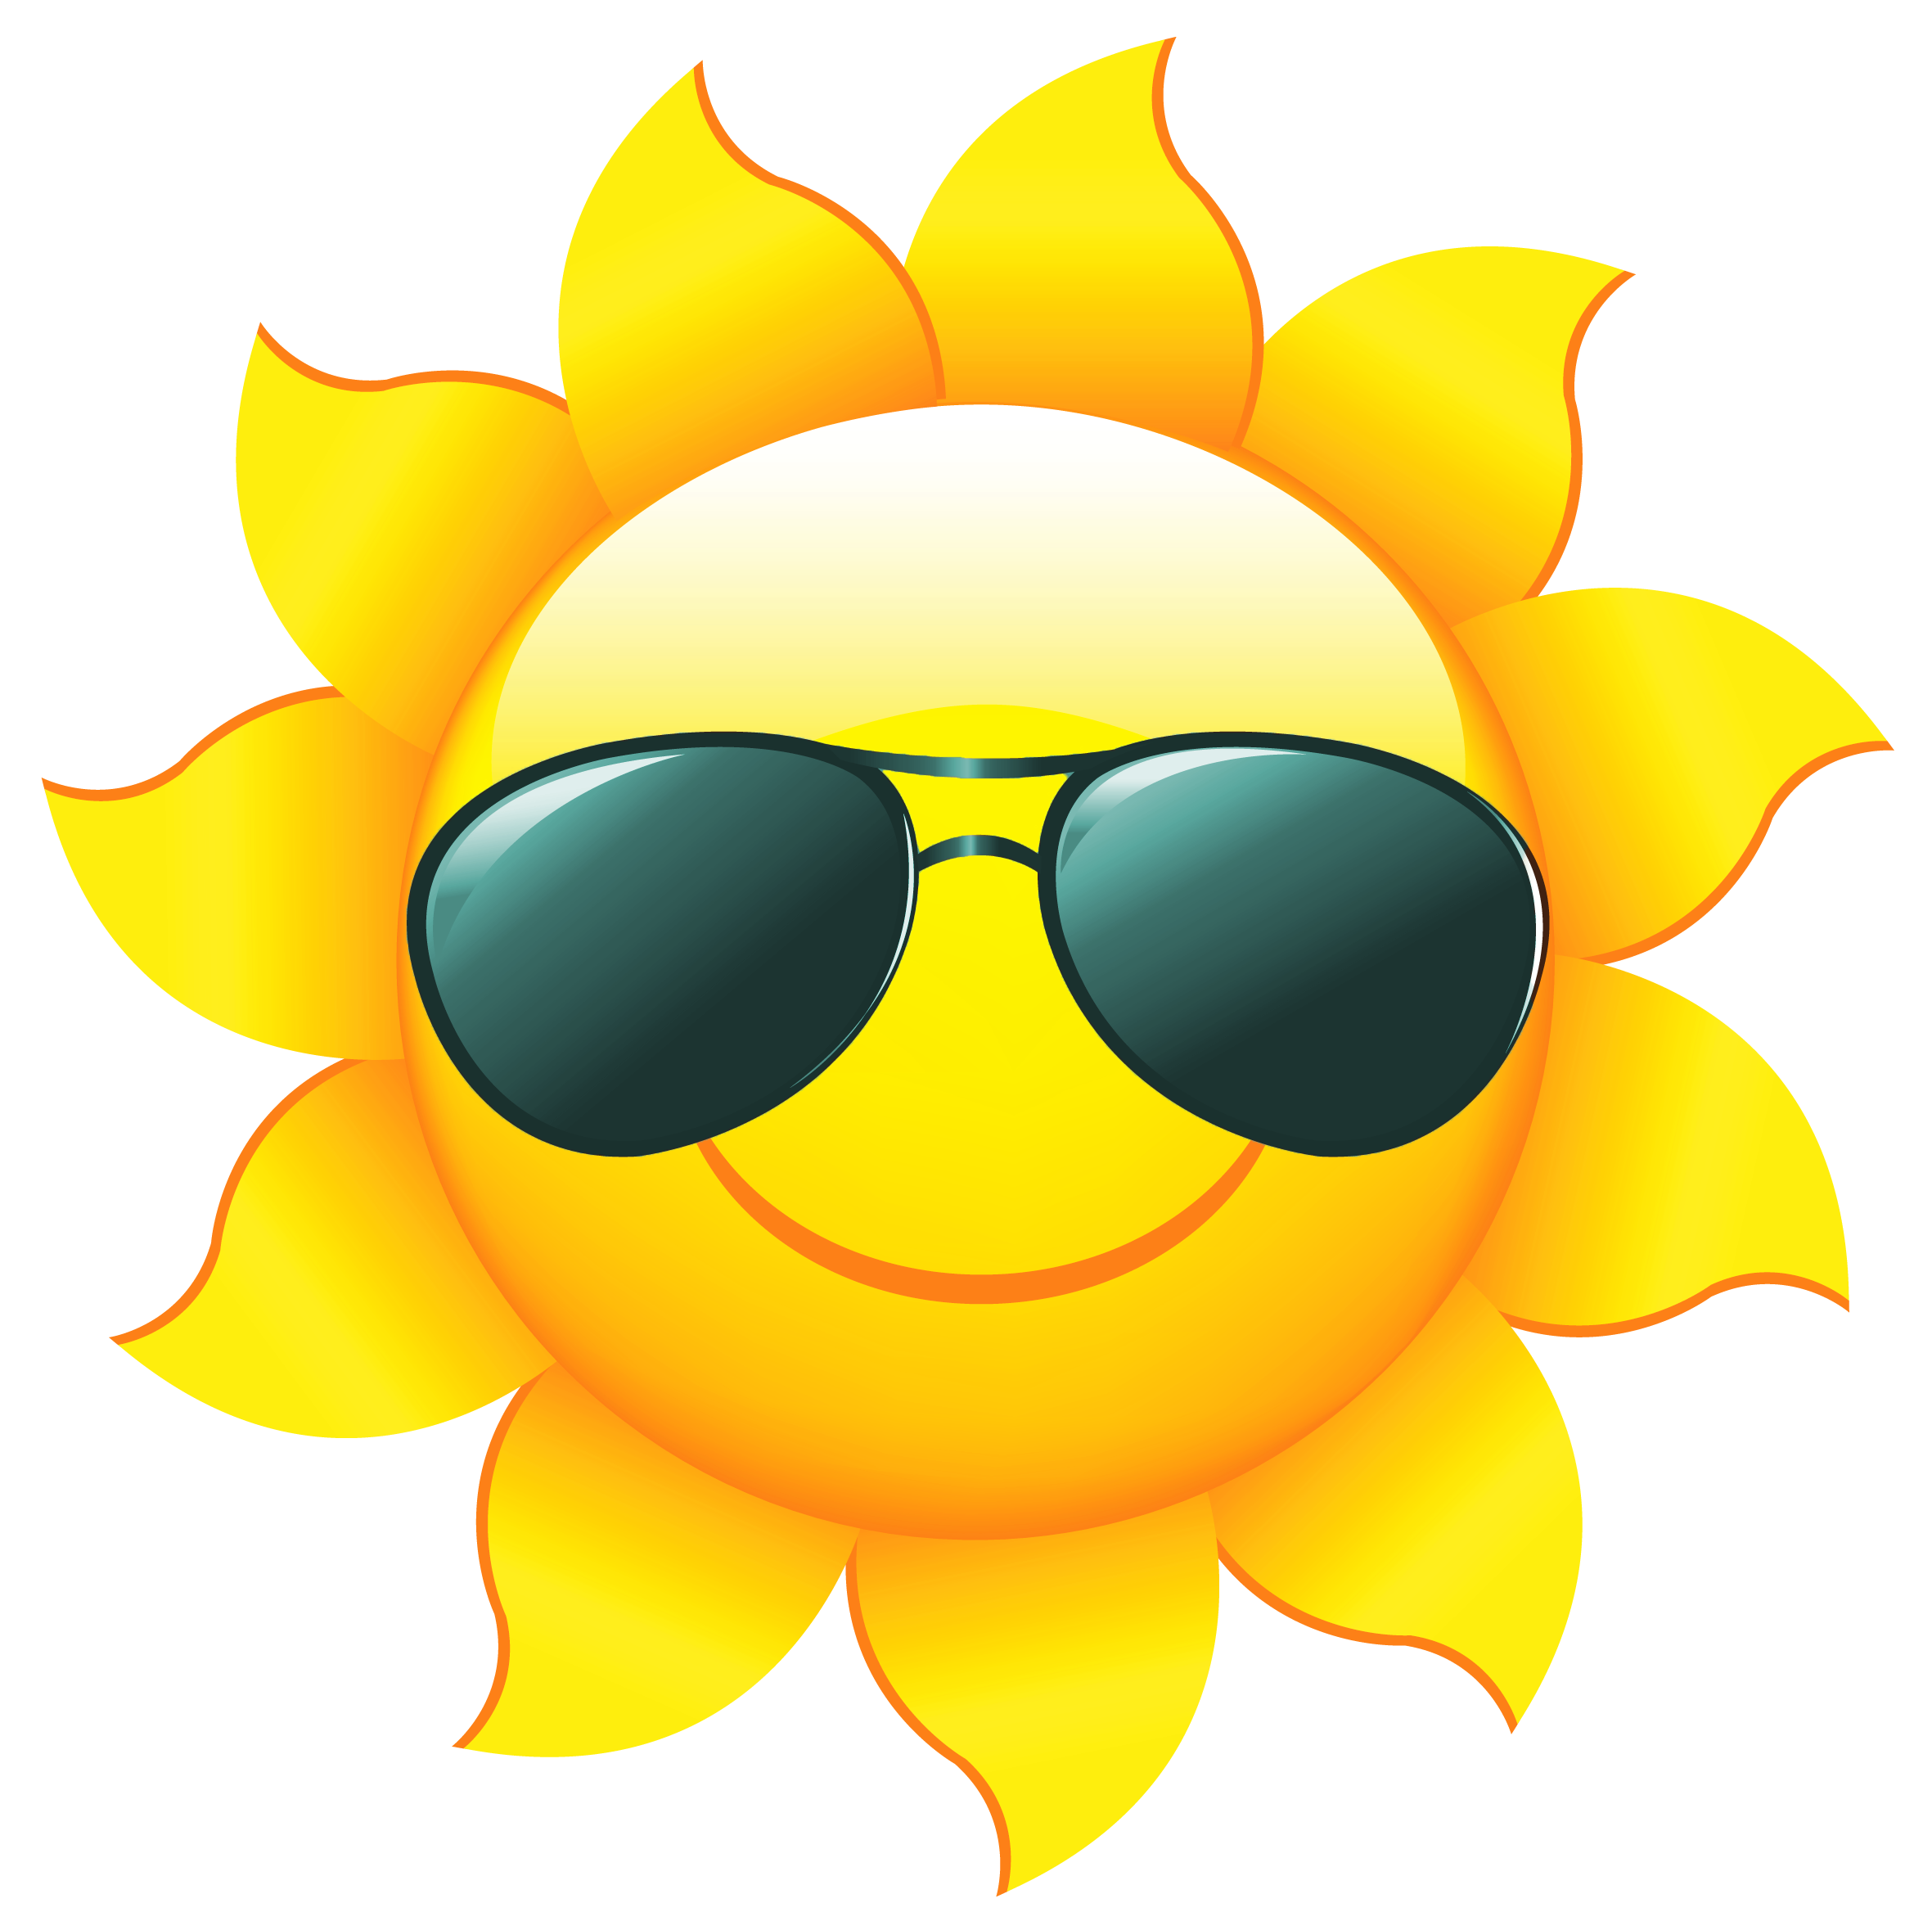 sun clip art with transparent background free rh clipart info sun wearing sunglasses clipart sun with shades clipart